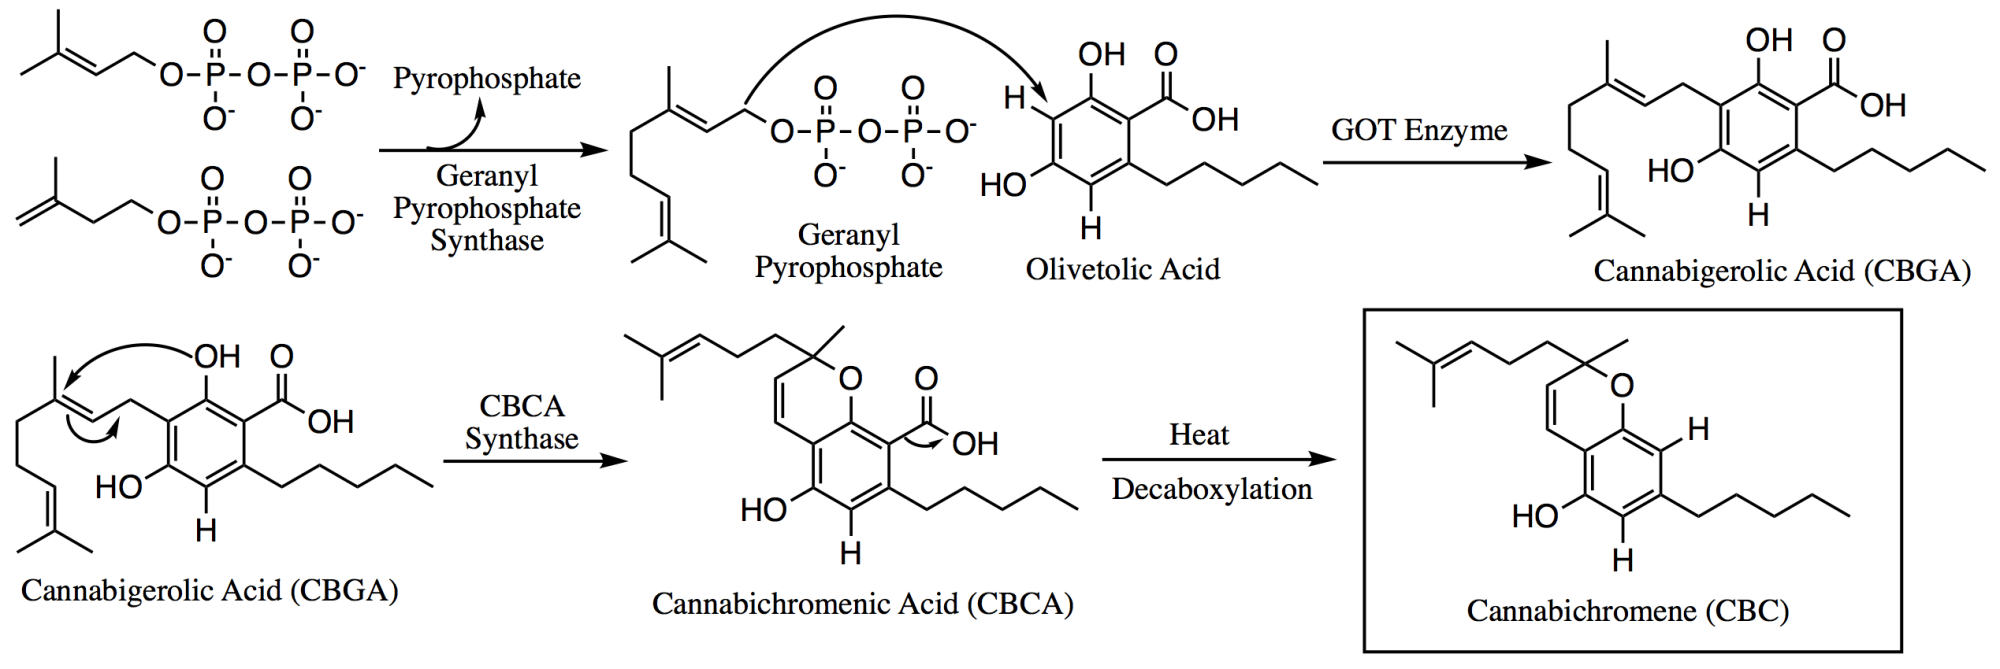 hight resolution of file biosynthesis of cbc png